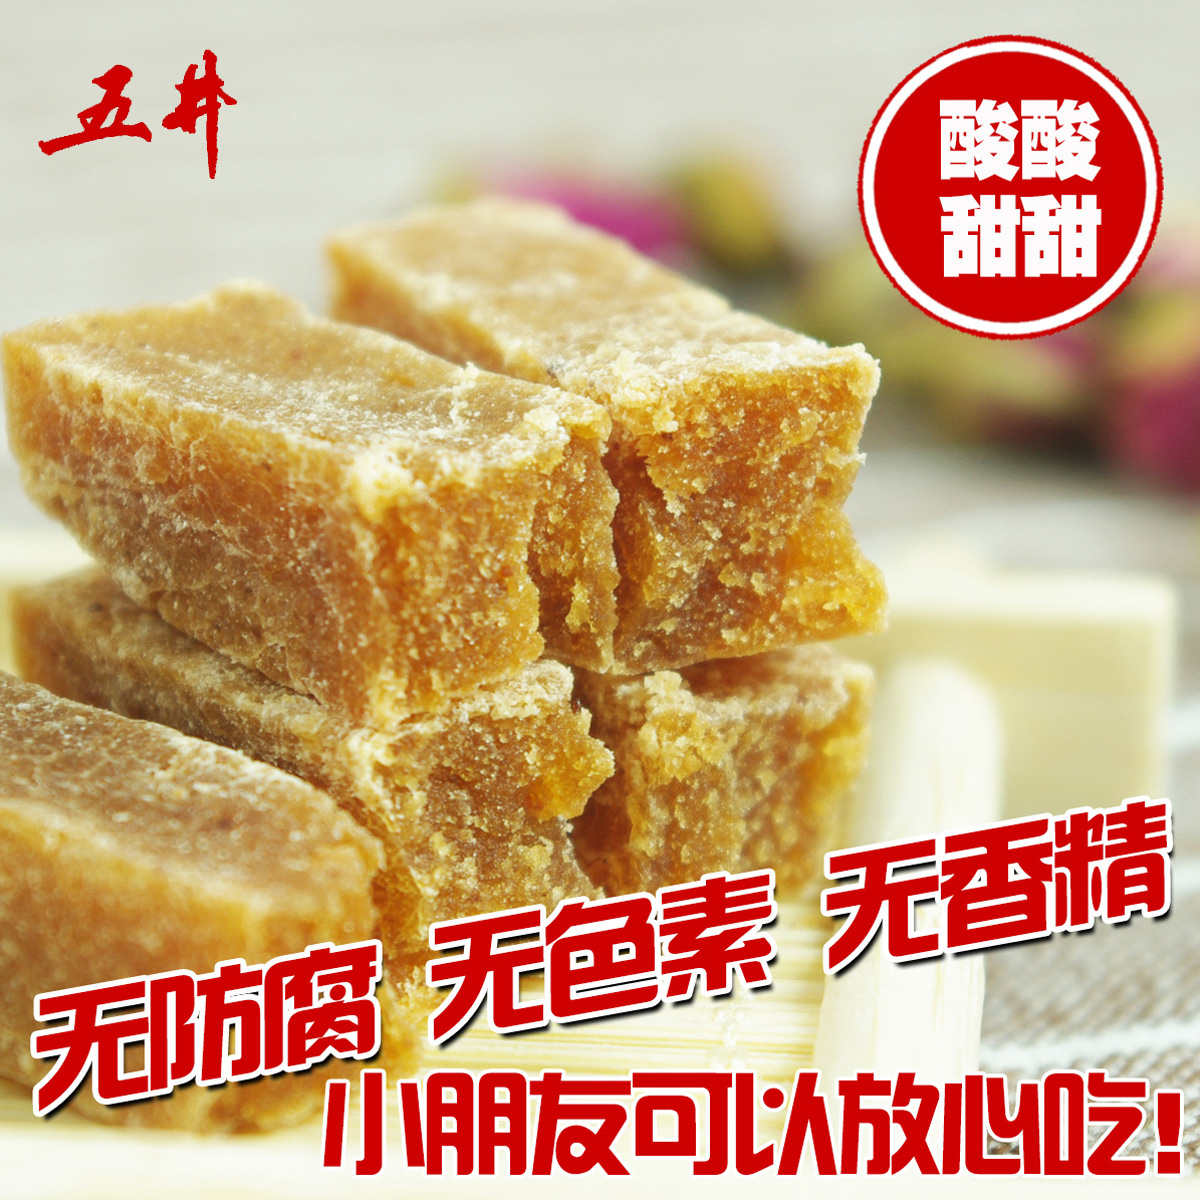 Goi hawthorn article 50g without adding hawthorn hawthorn products shandong linqu specialty fresh preserves leisure zero food